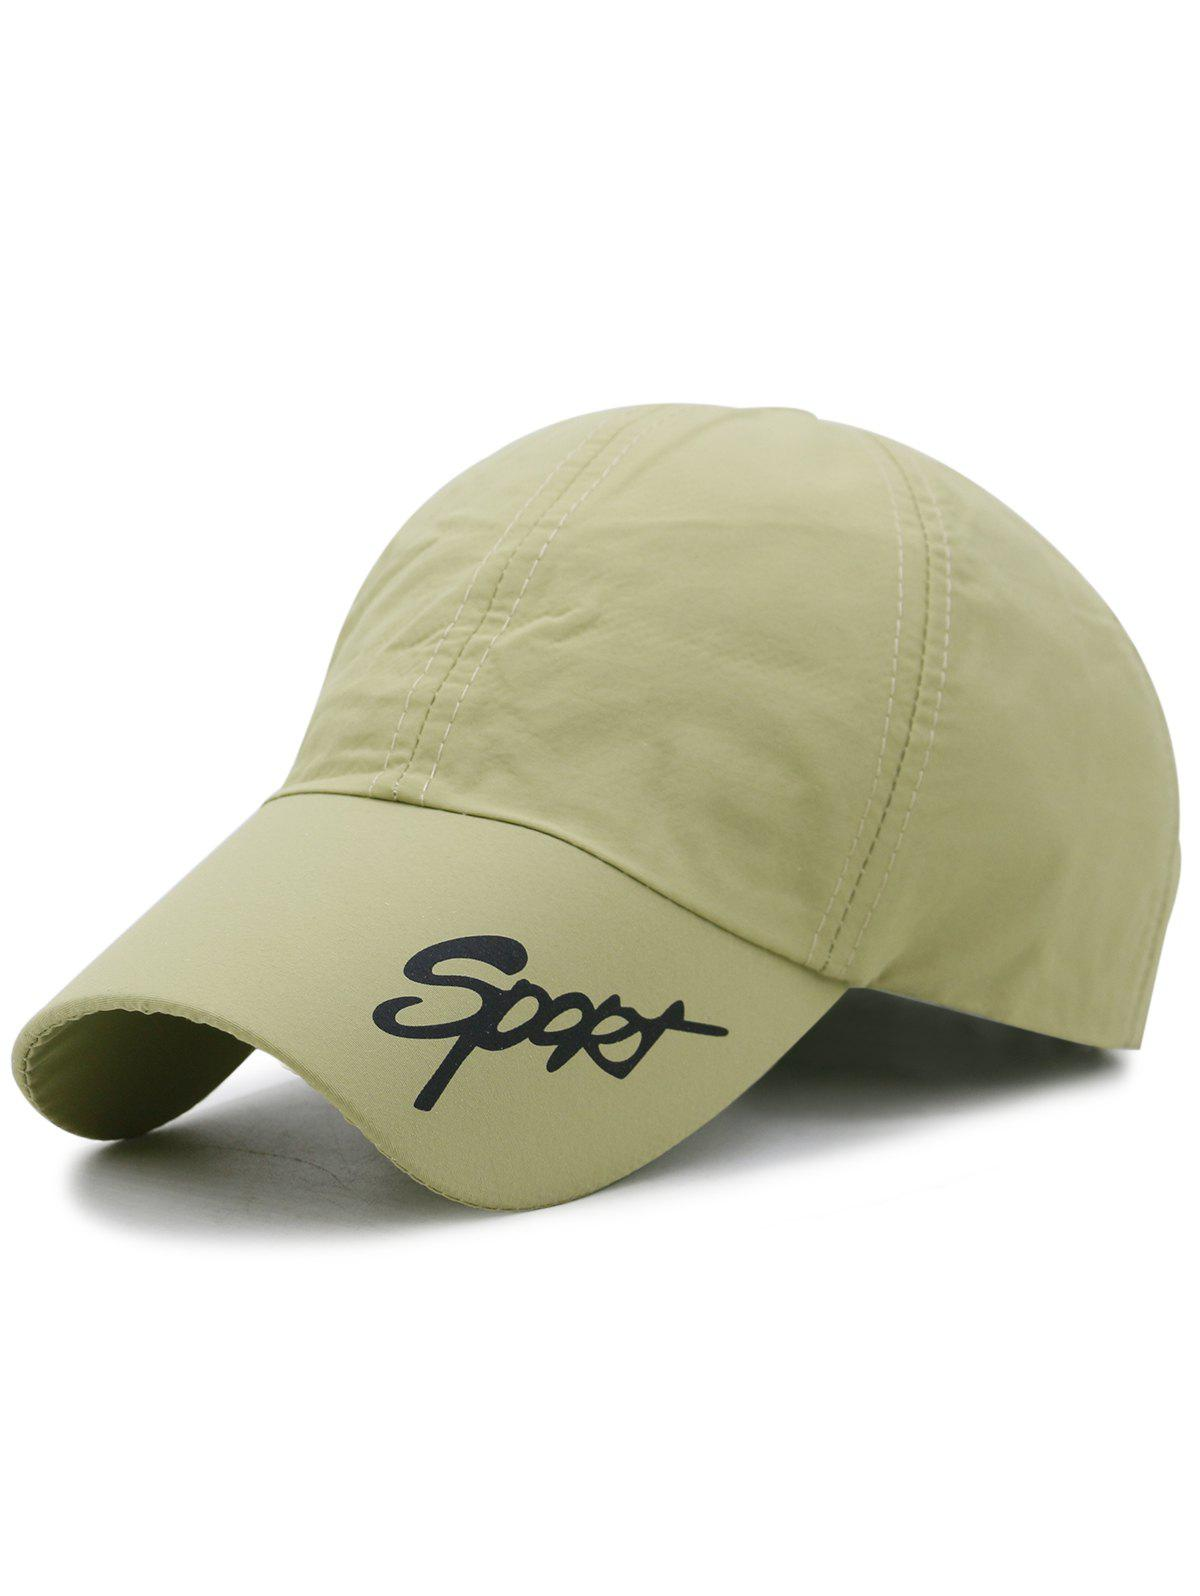 Outdoor SPORT Pattern Adjustbale Sunscreen Hat - LIGHT KHAKI